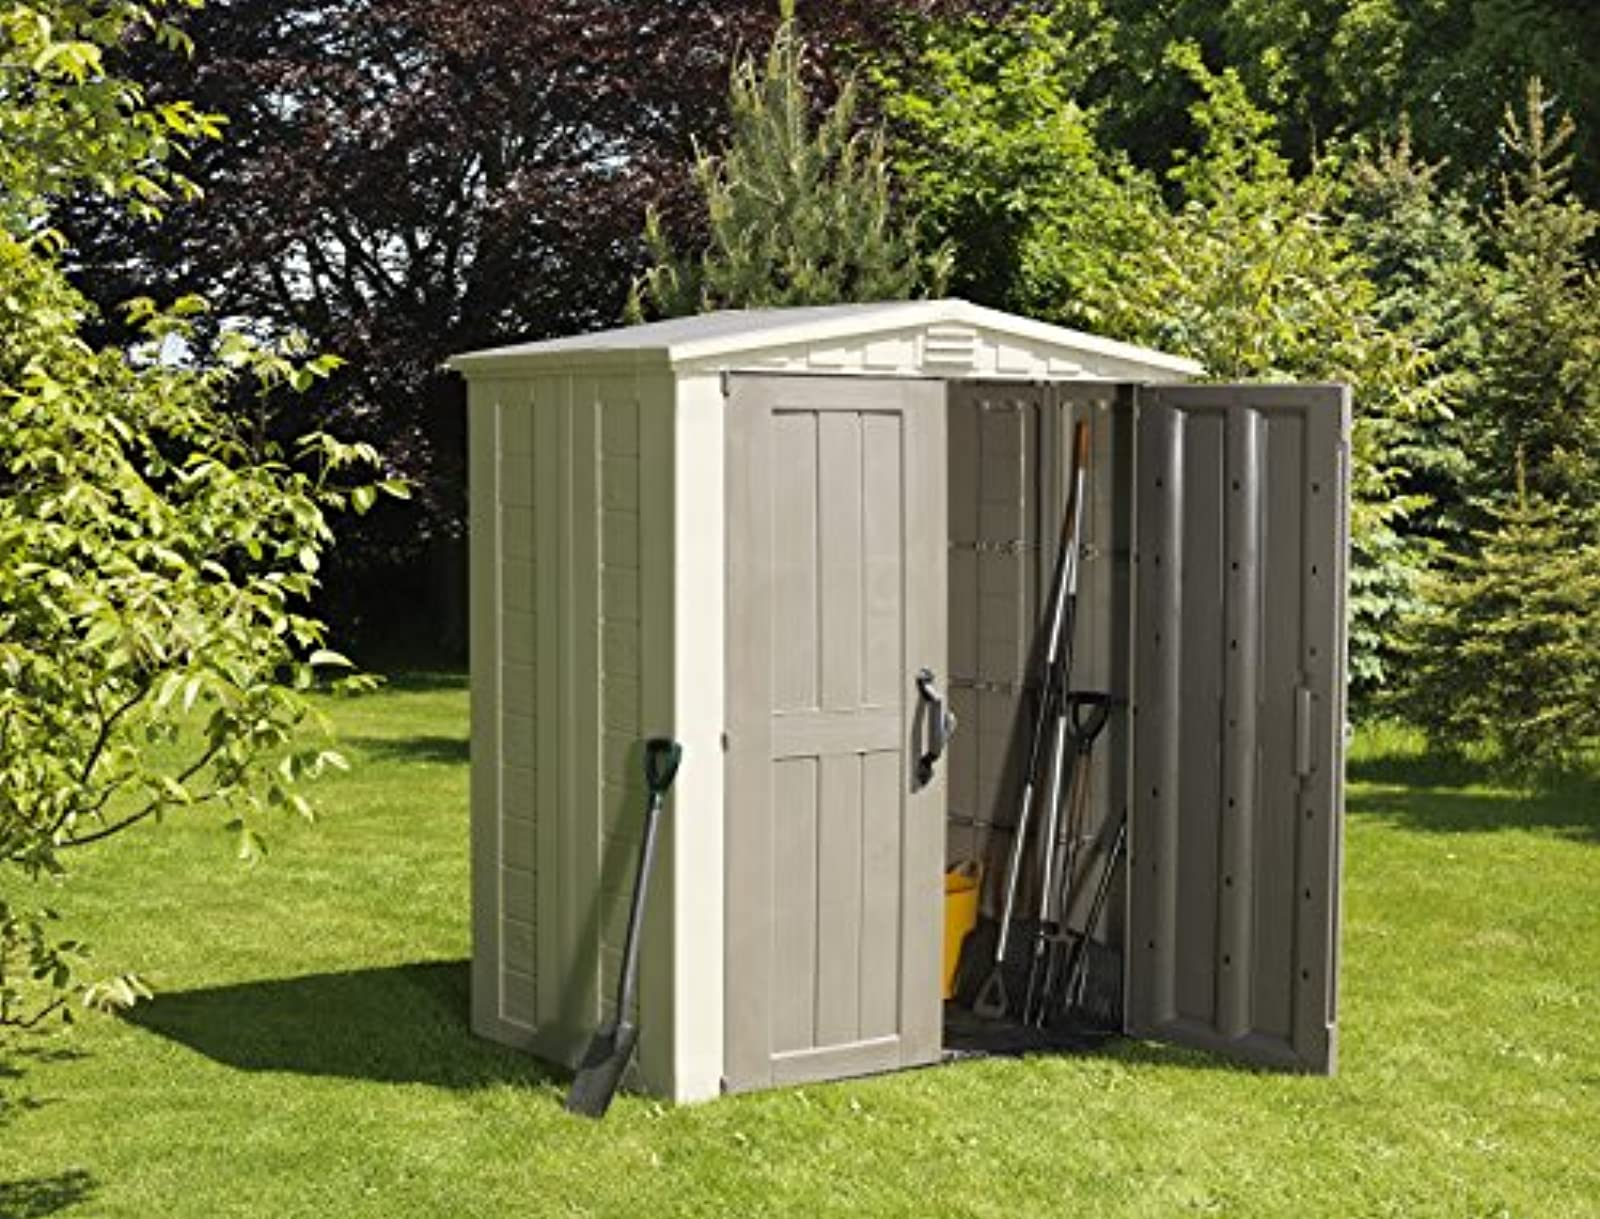 Keter factor plastic outdoor garden storage shed fade for Garden shed 4 x 3